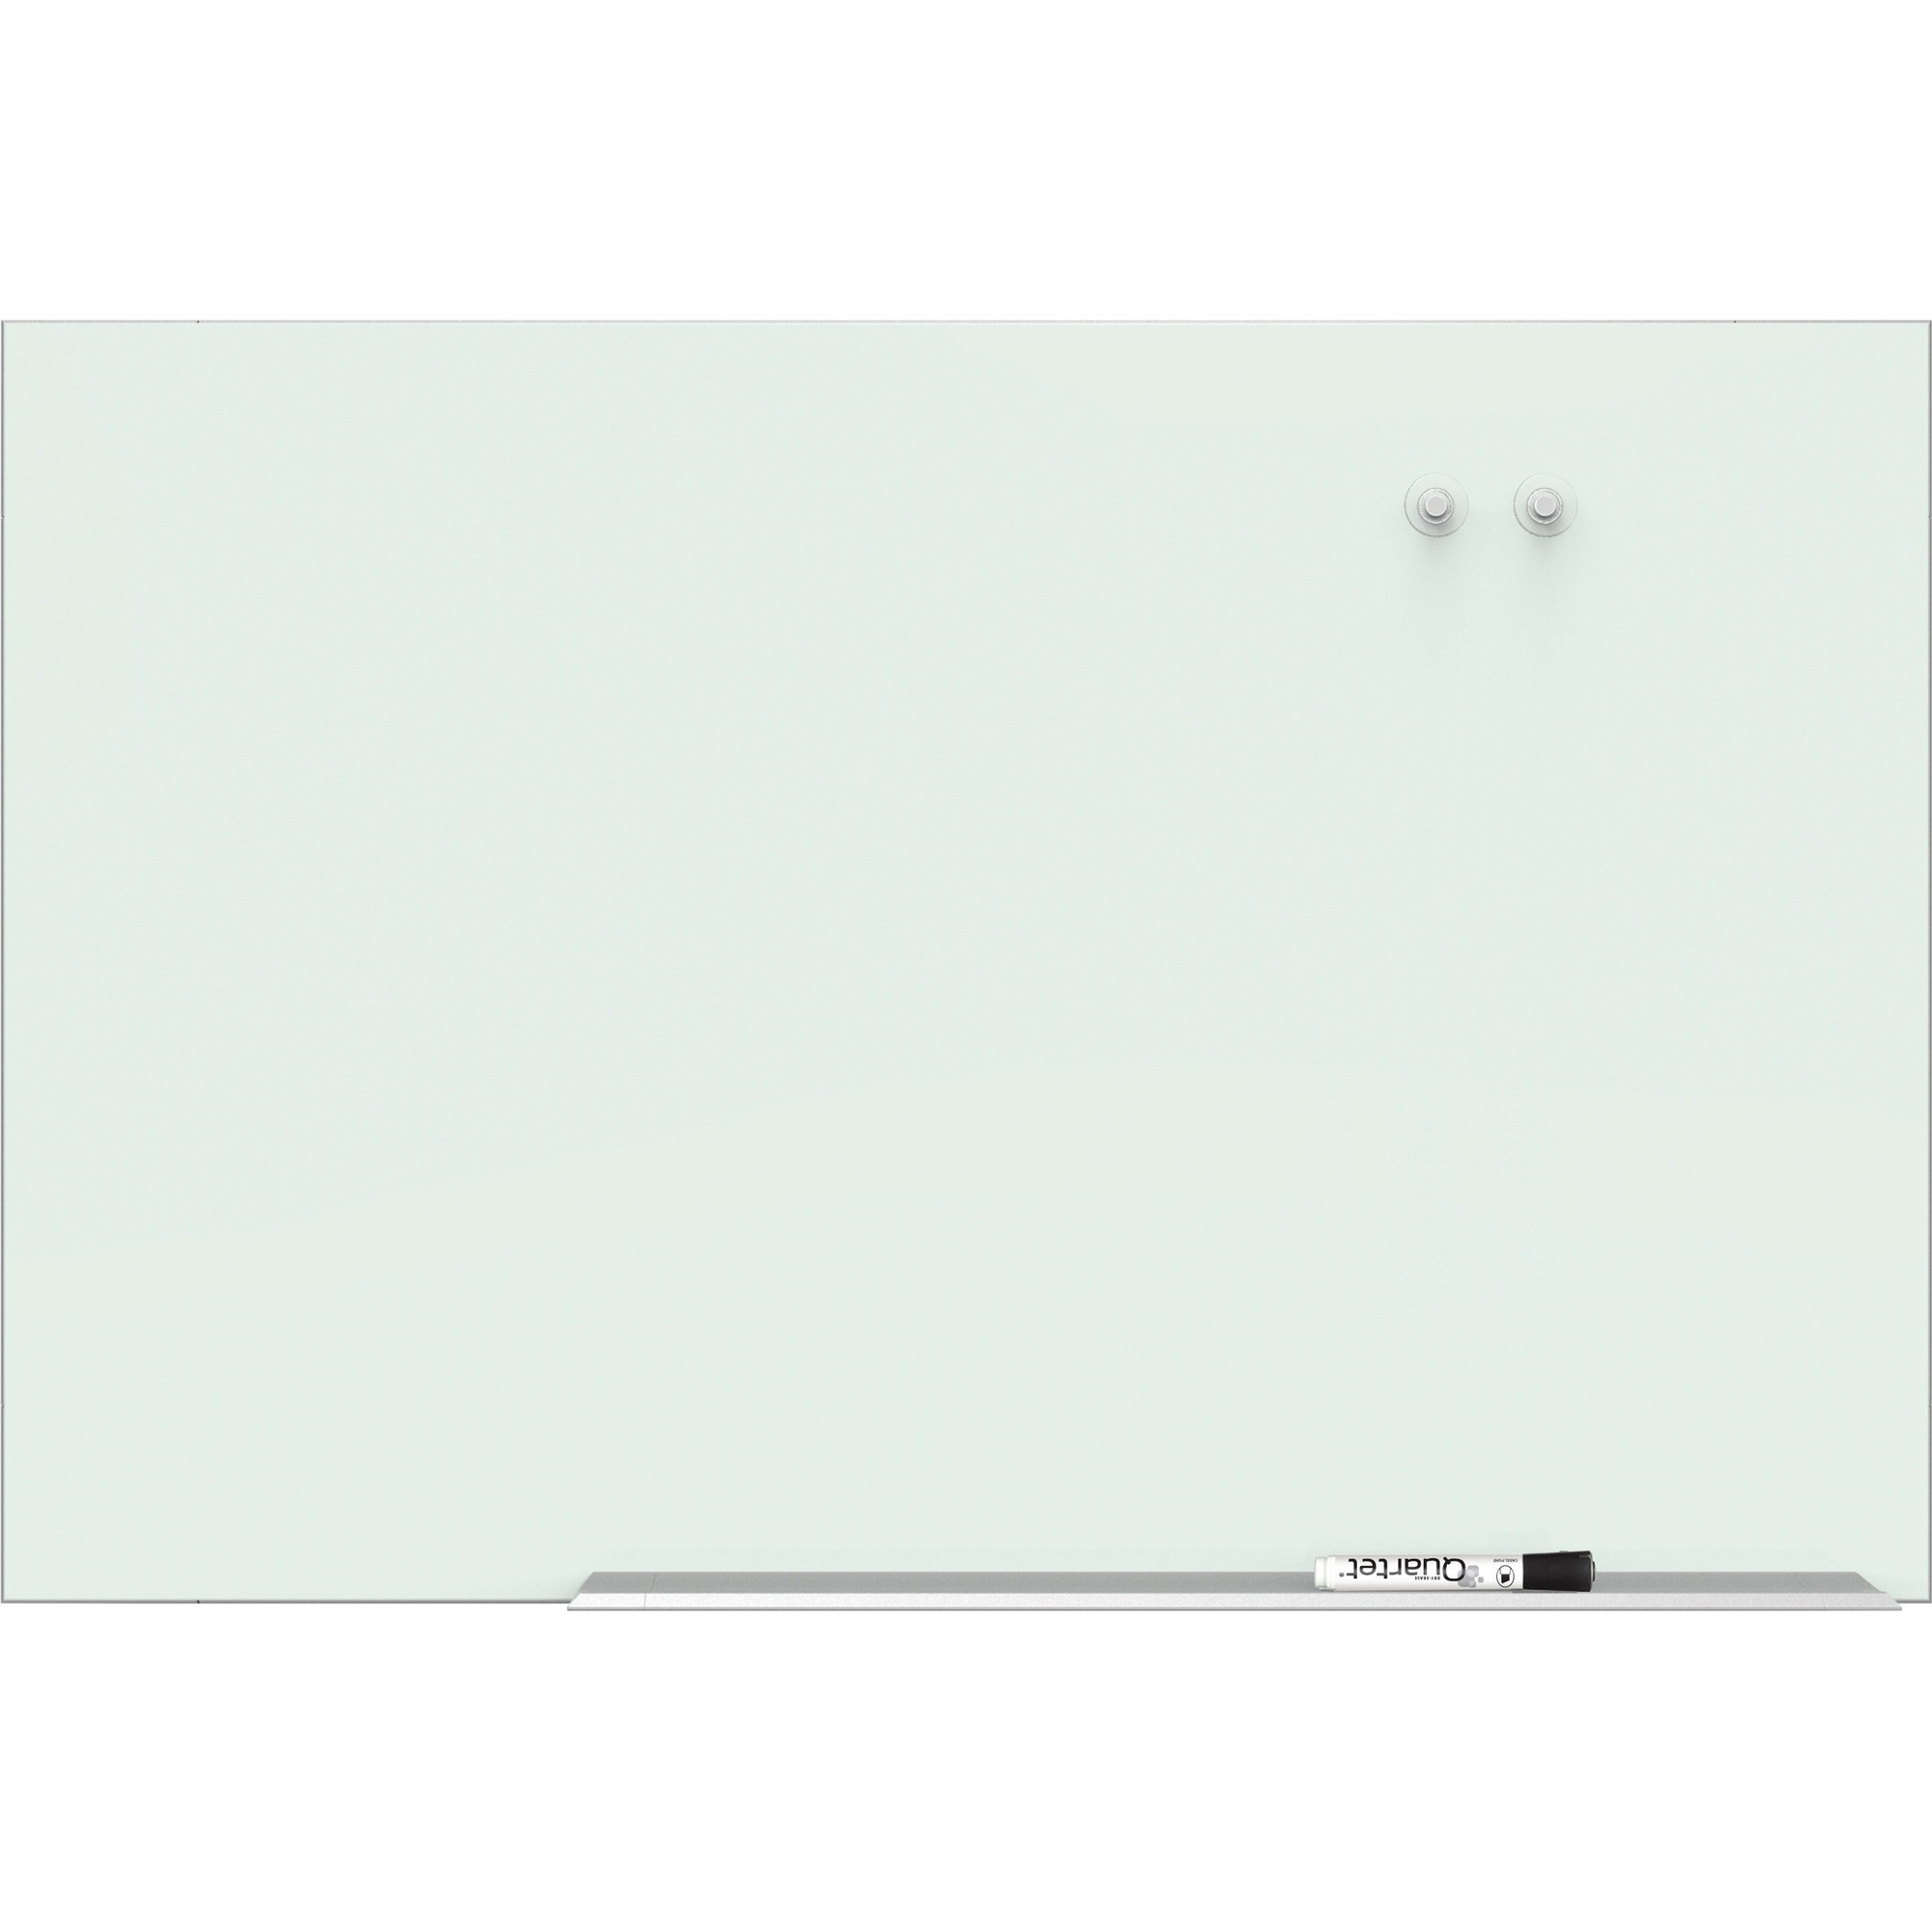 Quartet Element Magnetic Glass Dry-erase Board - 85 (7.1 Ft) Width X 48 (4 Ft) Height - White Tempered Glass Surface - Aluminum Frame - Rectangle - Mount - Assembly Required - 1 Each